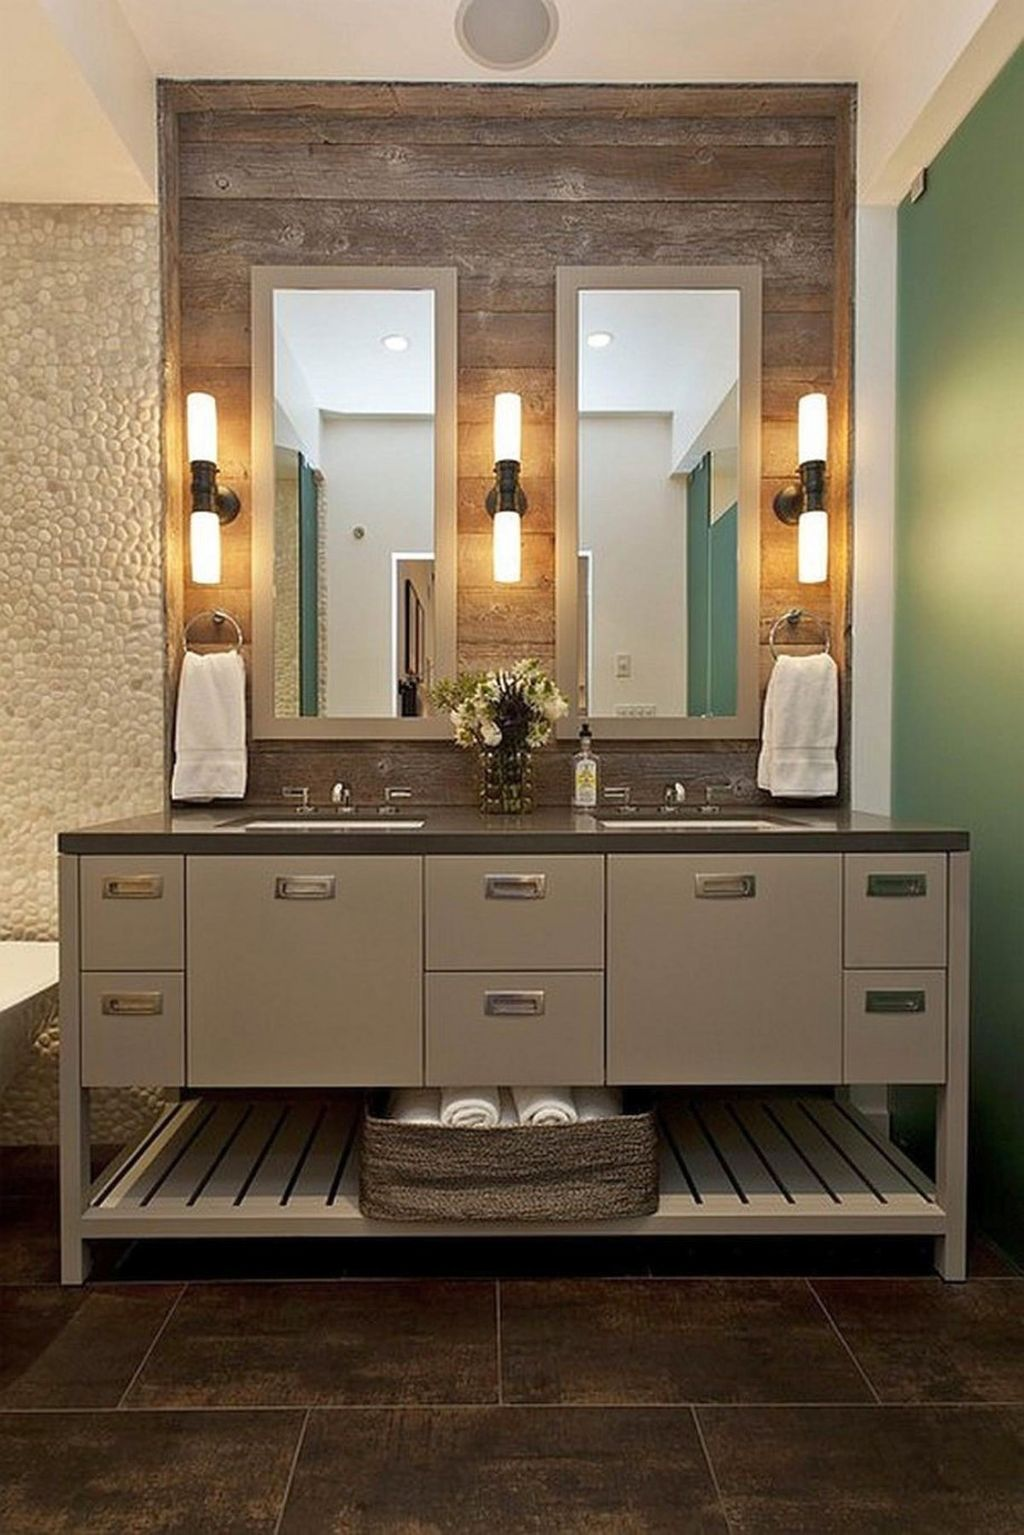 Double framed mirrors with linear lighting. - 18 Stunning Master Bathroom Lighting Ideas & Double framed mirrors with linear lighting. - 18 Stunning Master ... azcodes.com